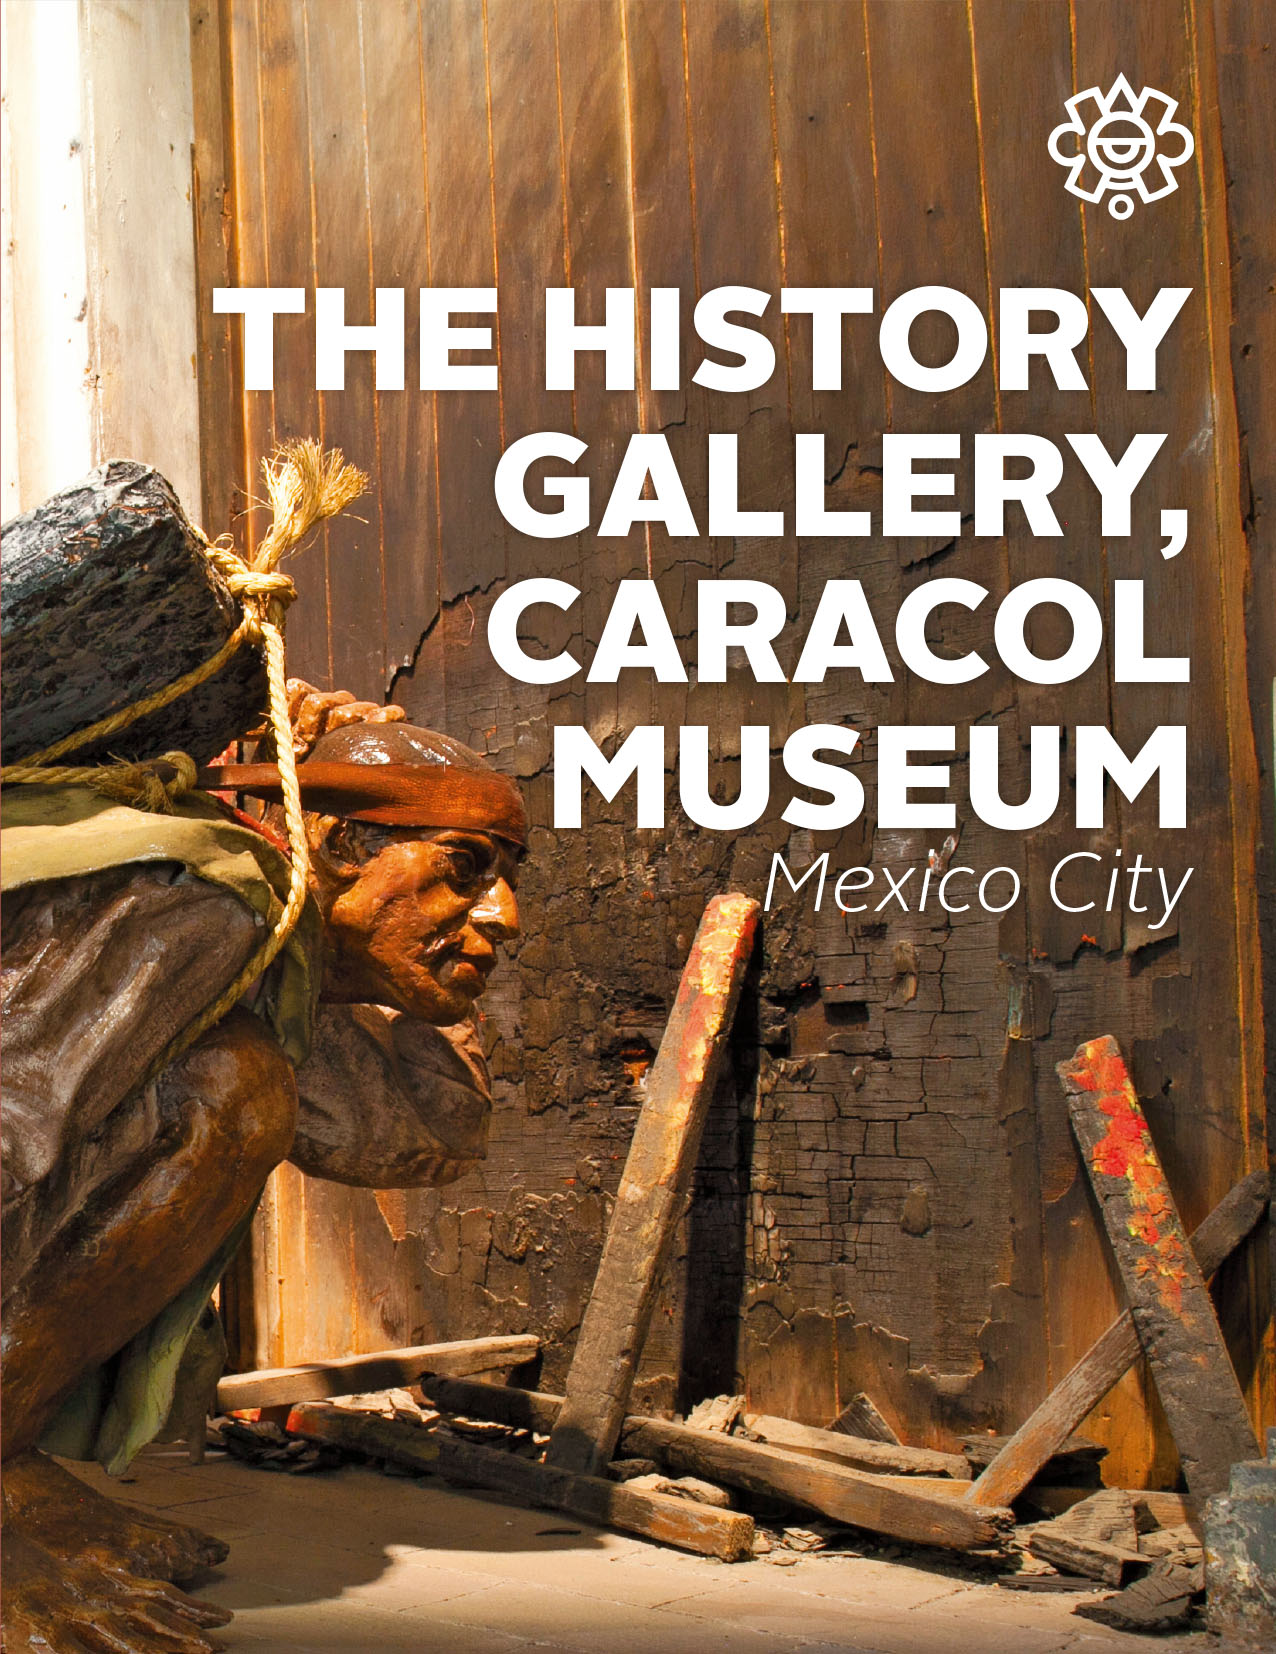 The History Gallery, Caracol Museum